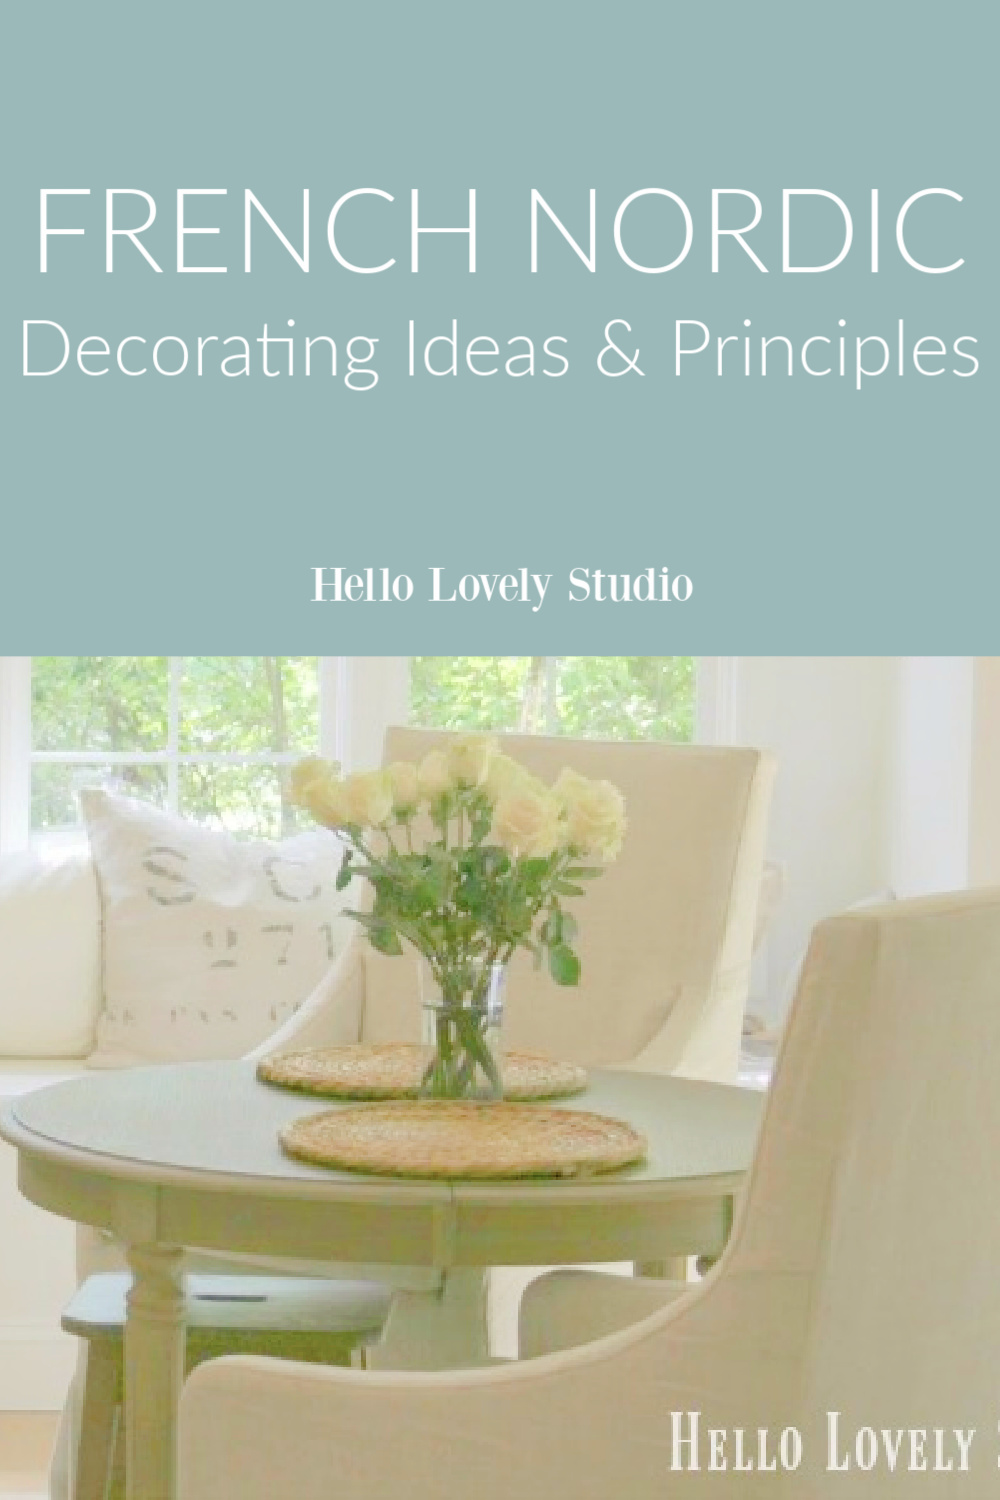 French Nordic decorating ideas and principles - Hello Lovely Studio.